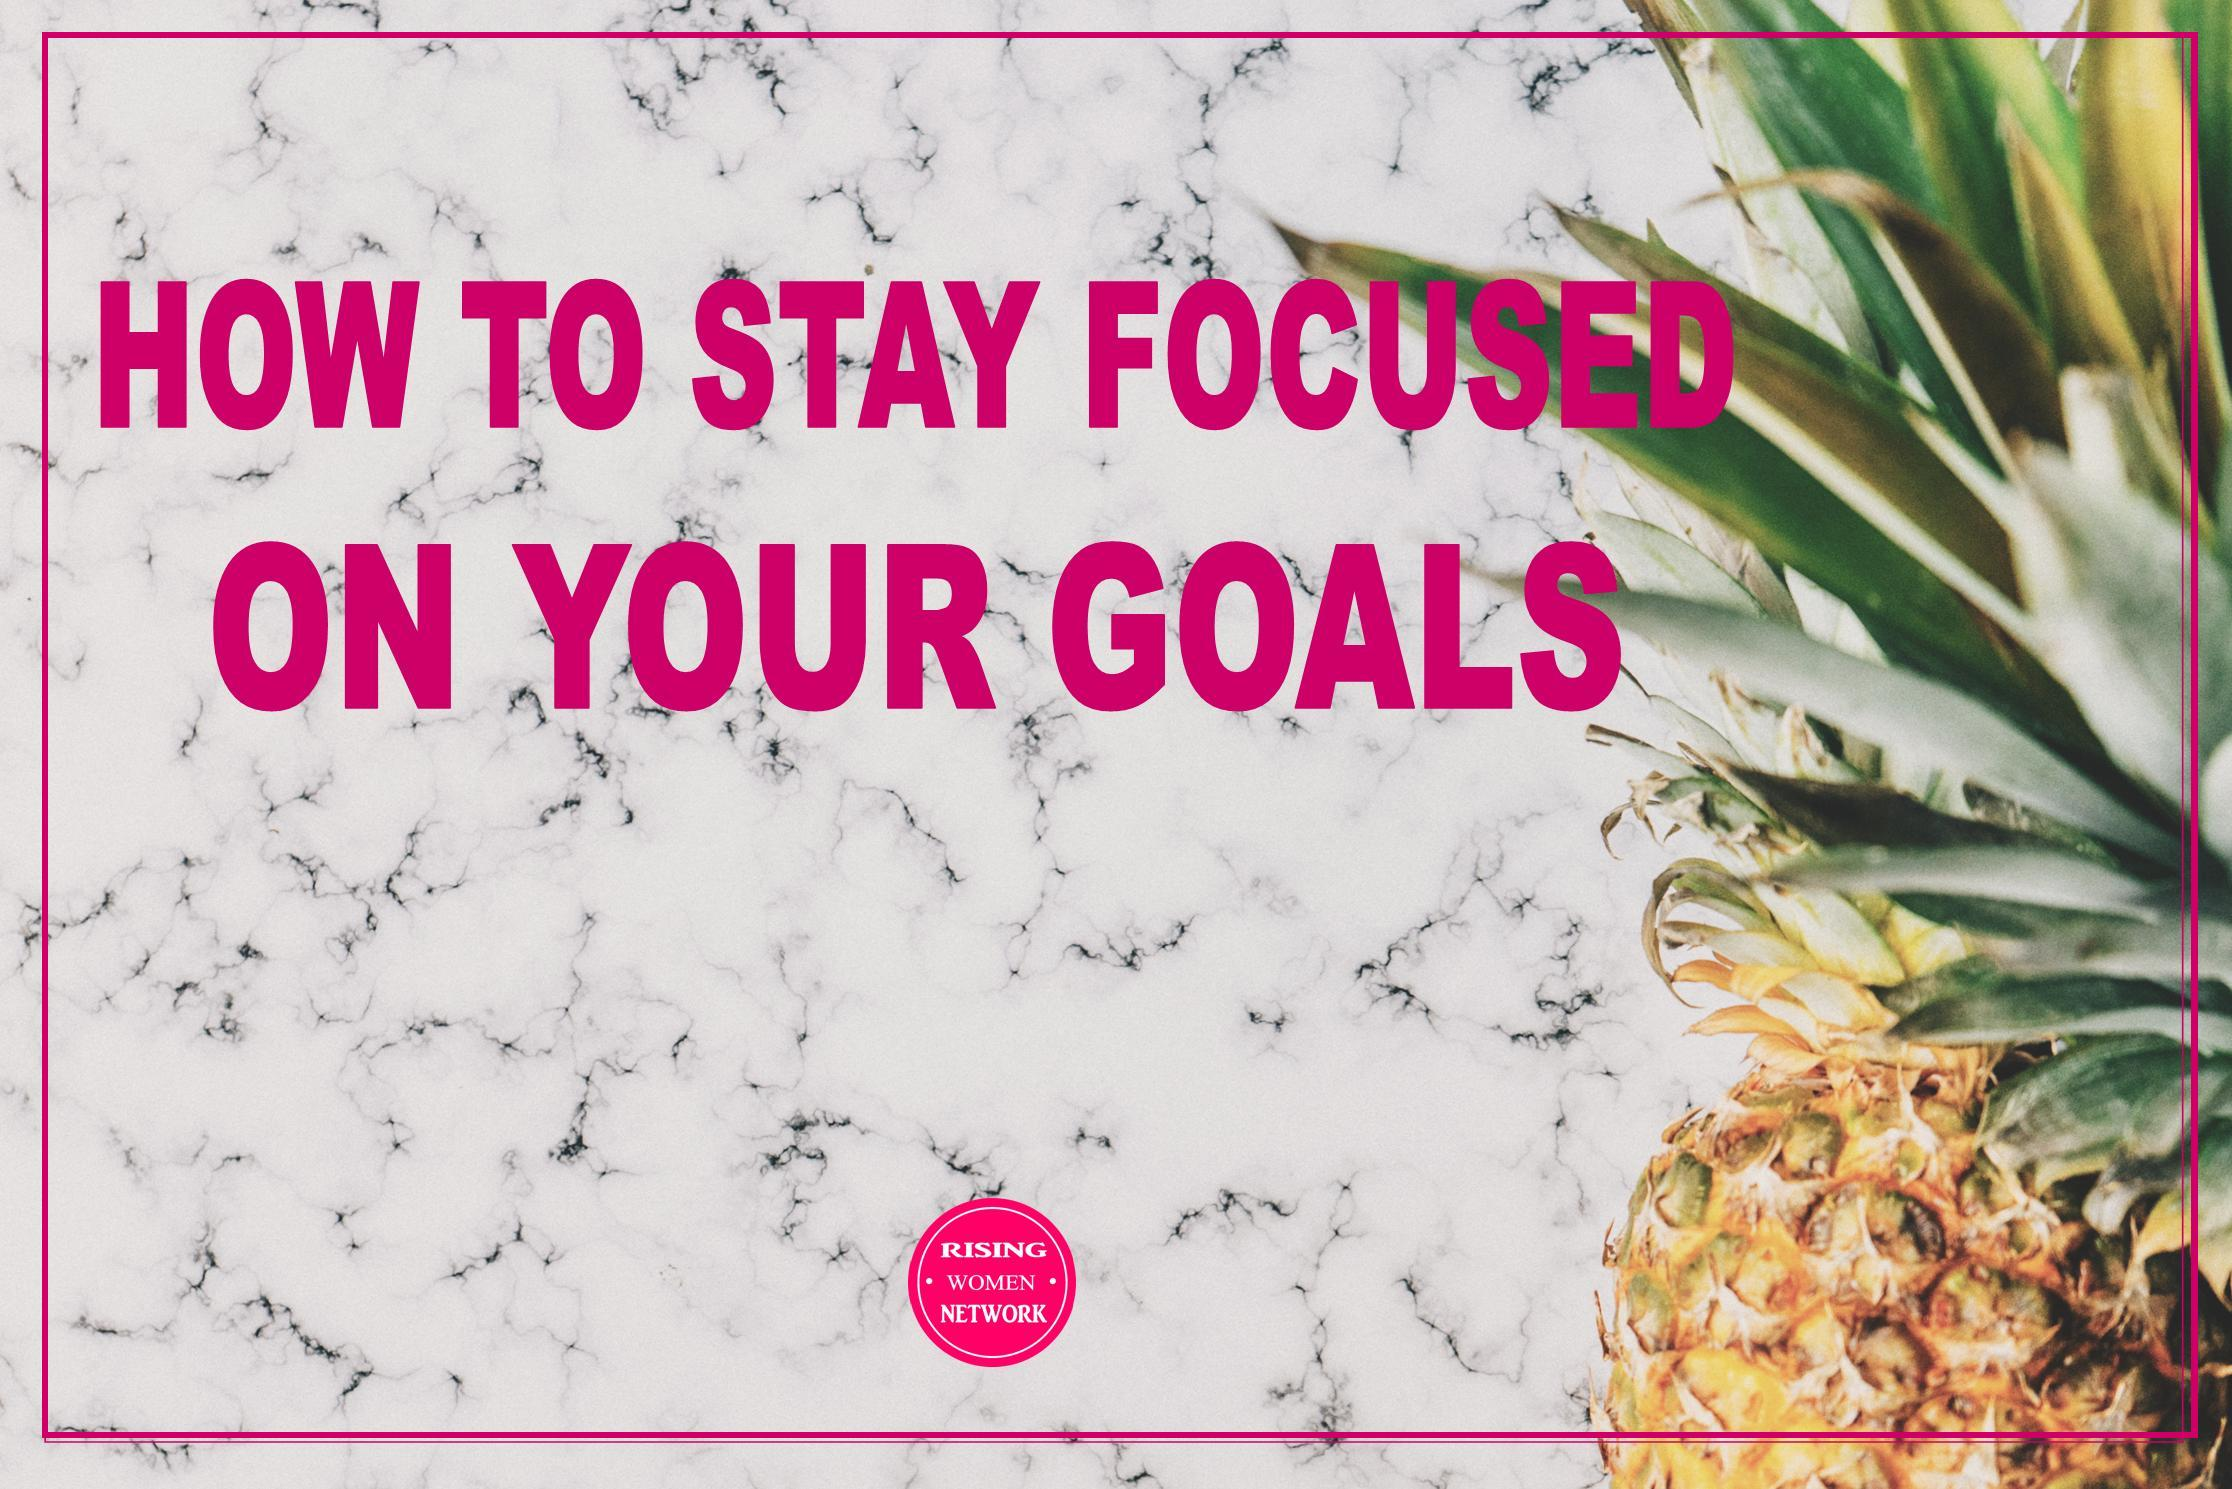 It's much easier to stay focused on your goals when you're excited about what you hope to accomplish.It's as simple as that!